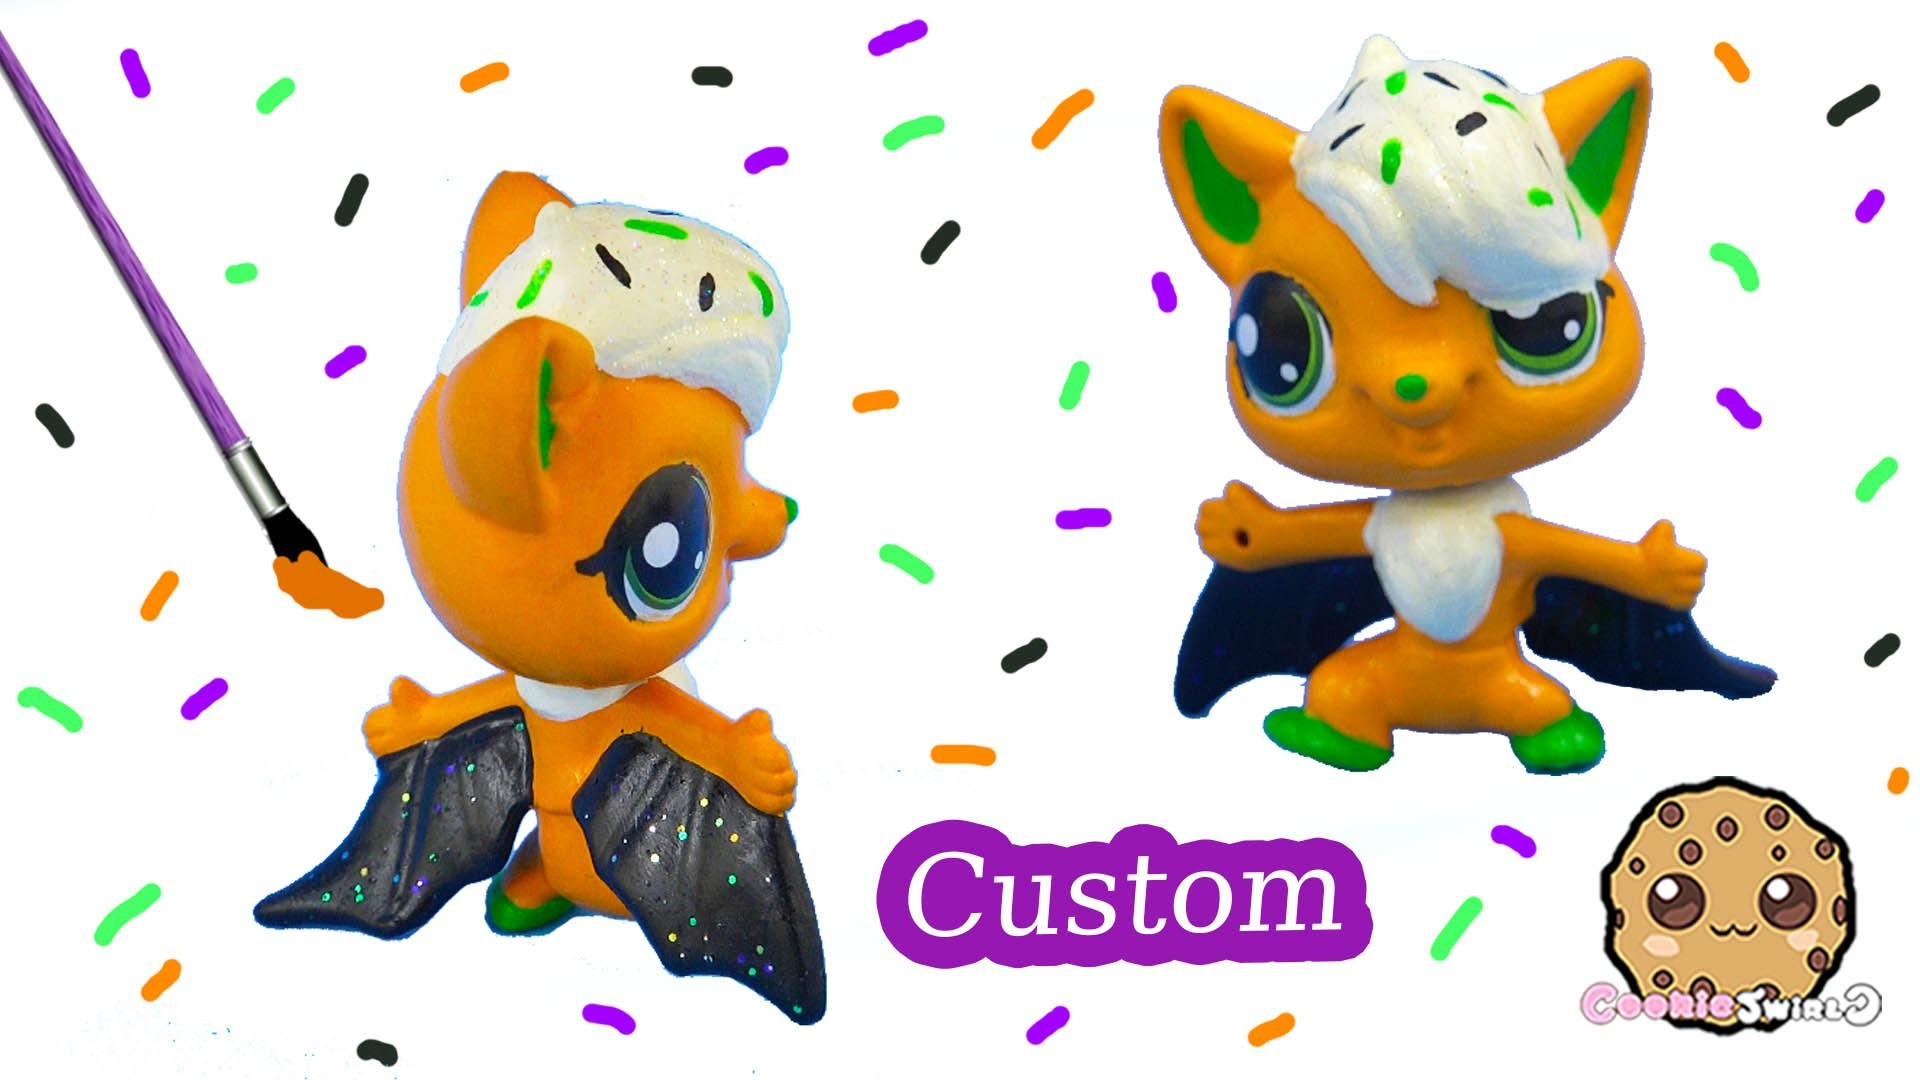 DIY Littlest Pet Shop Custom Cupcake Halloween Inspired LPS Bat Painted Craft Toy Cookieswirlc